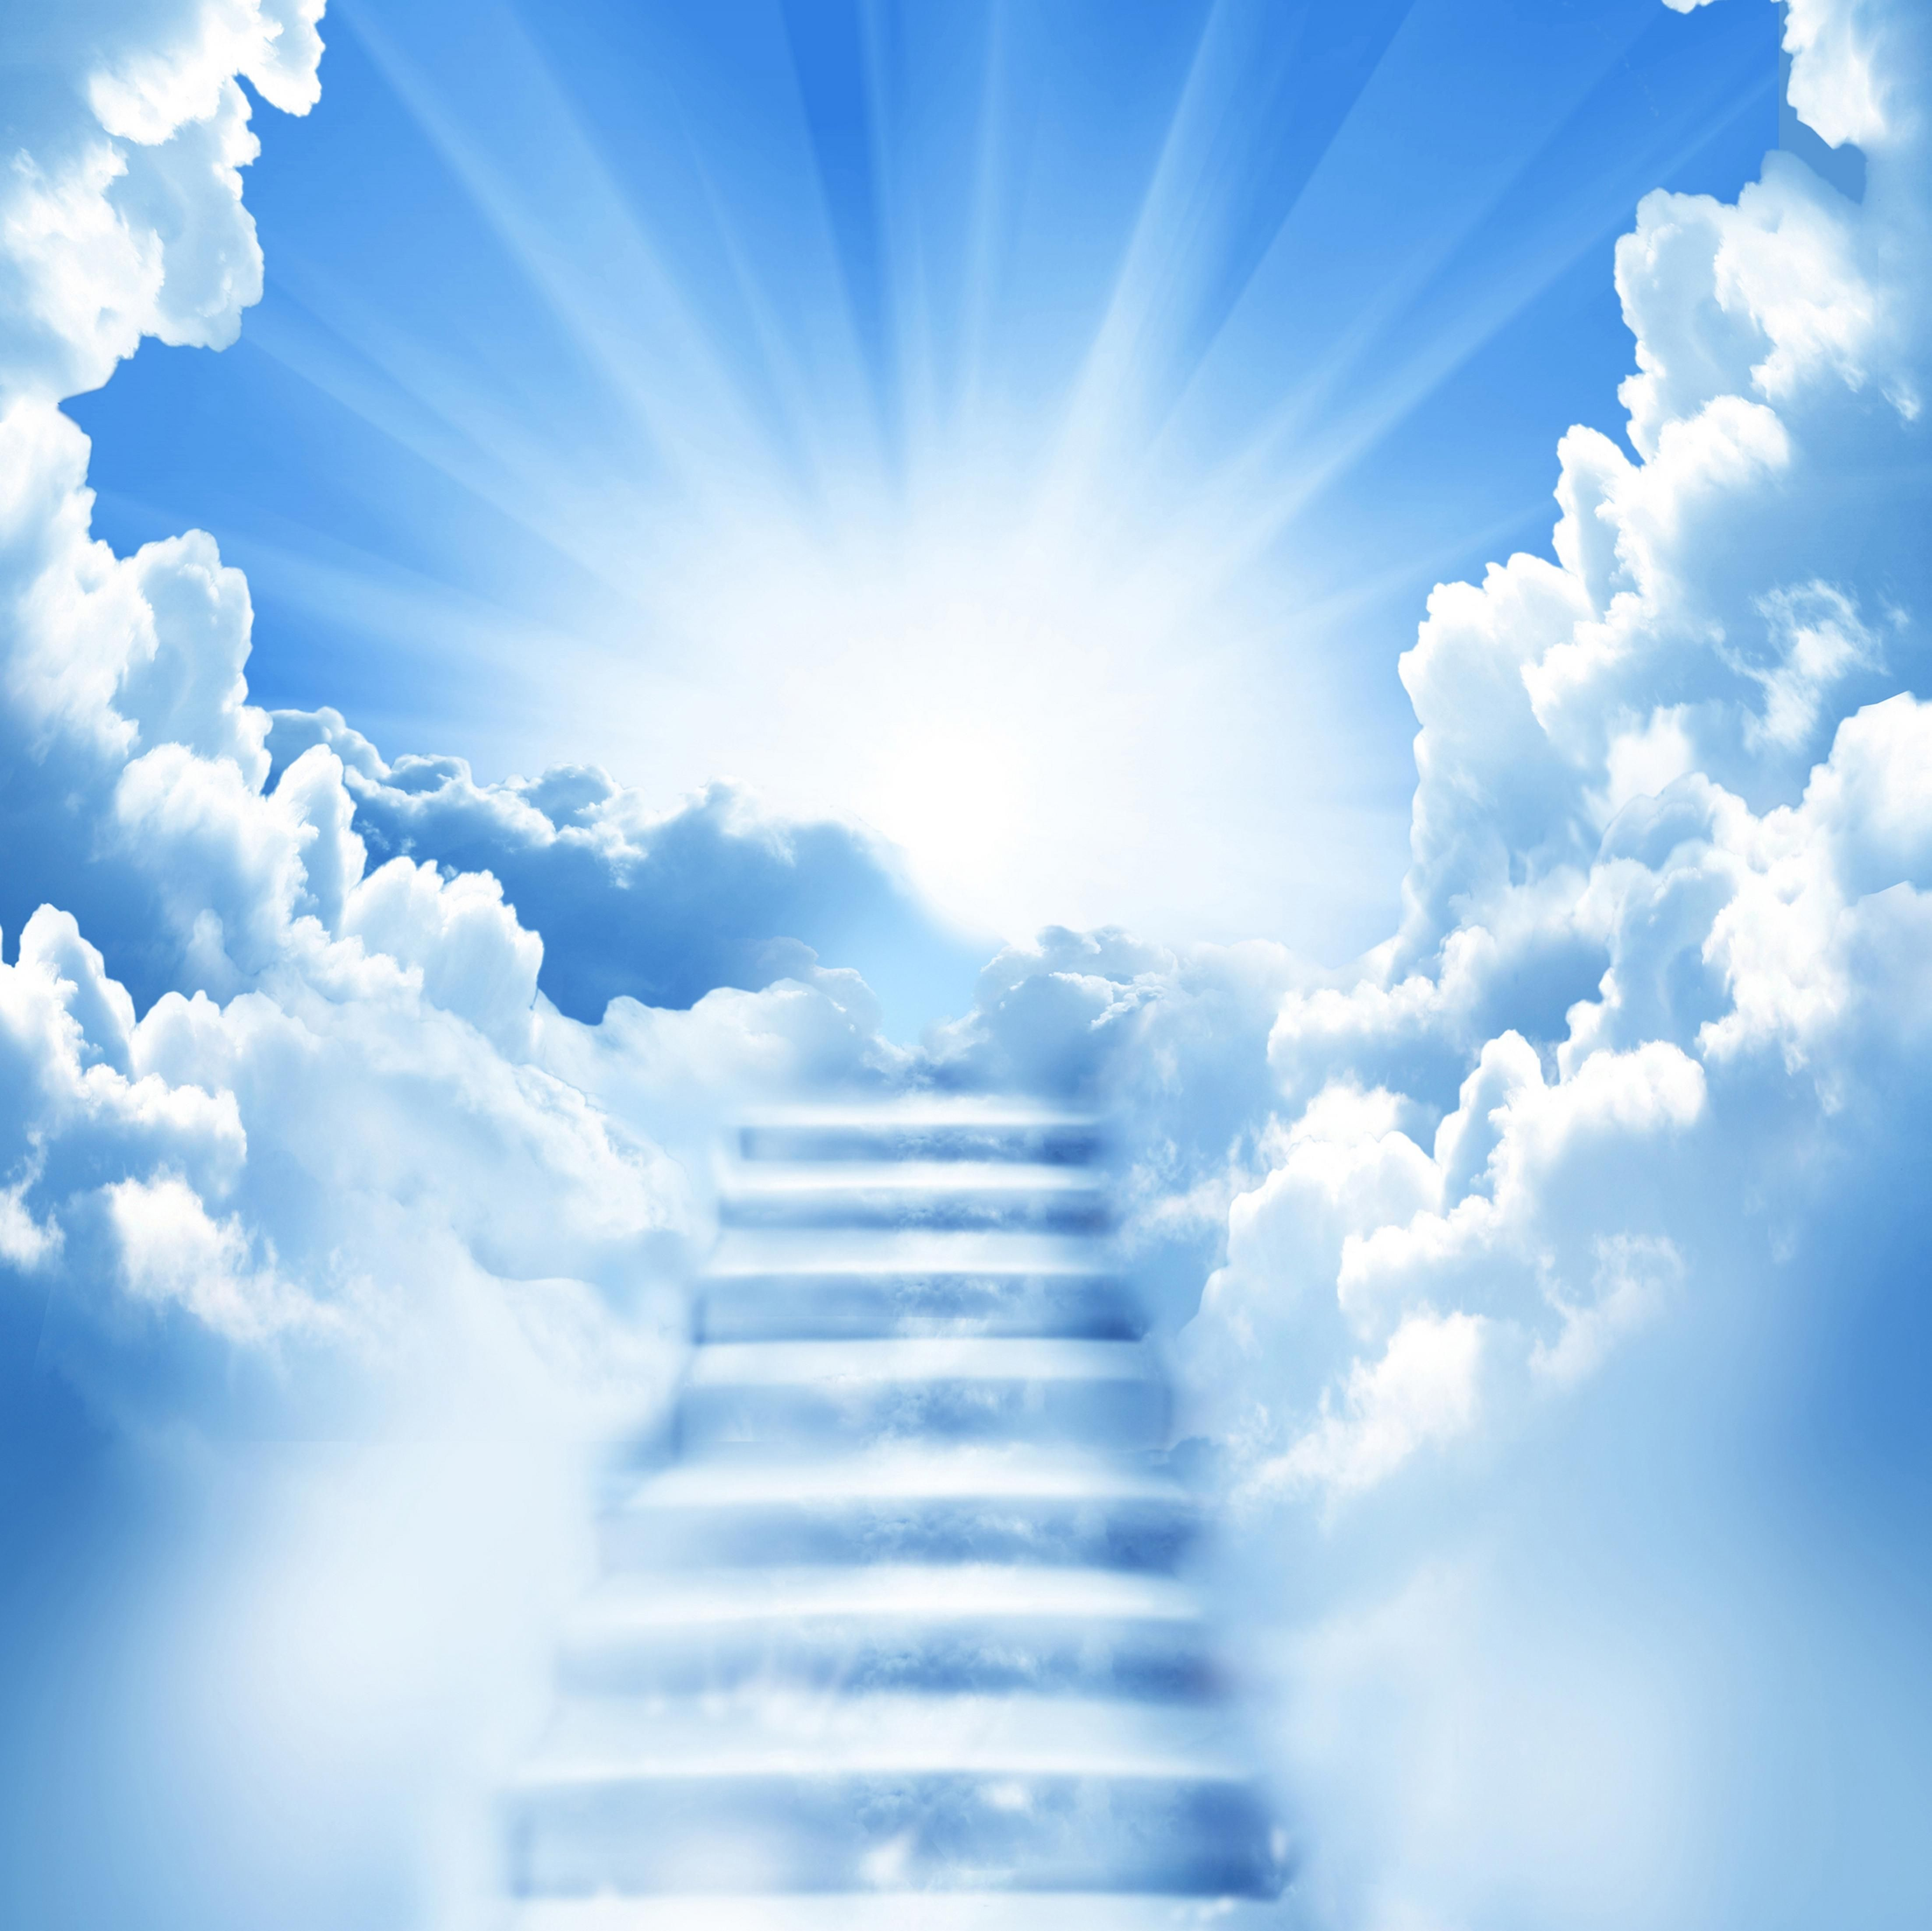 Funeral Clouds Wallpapers   Top Funeral Clouds Backgrounds 4412x4410